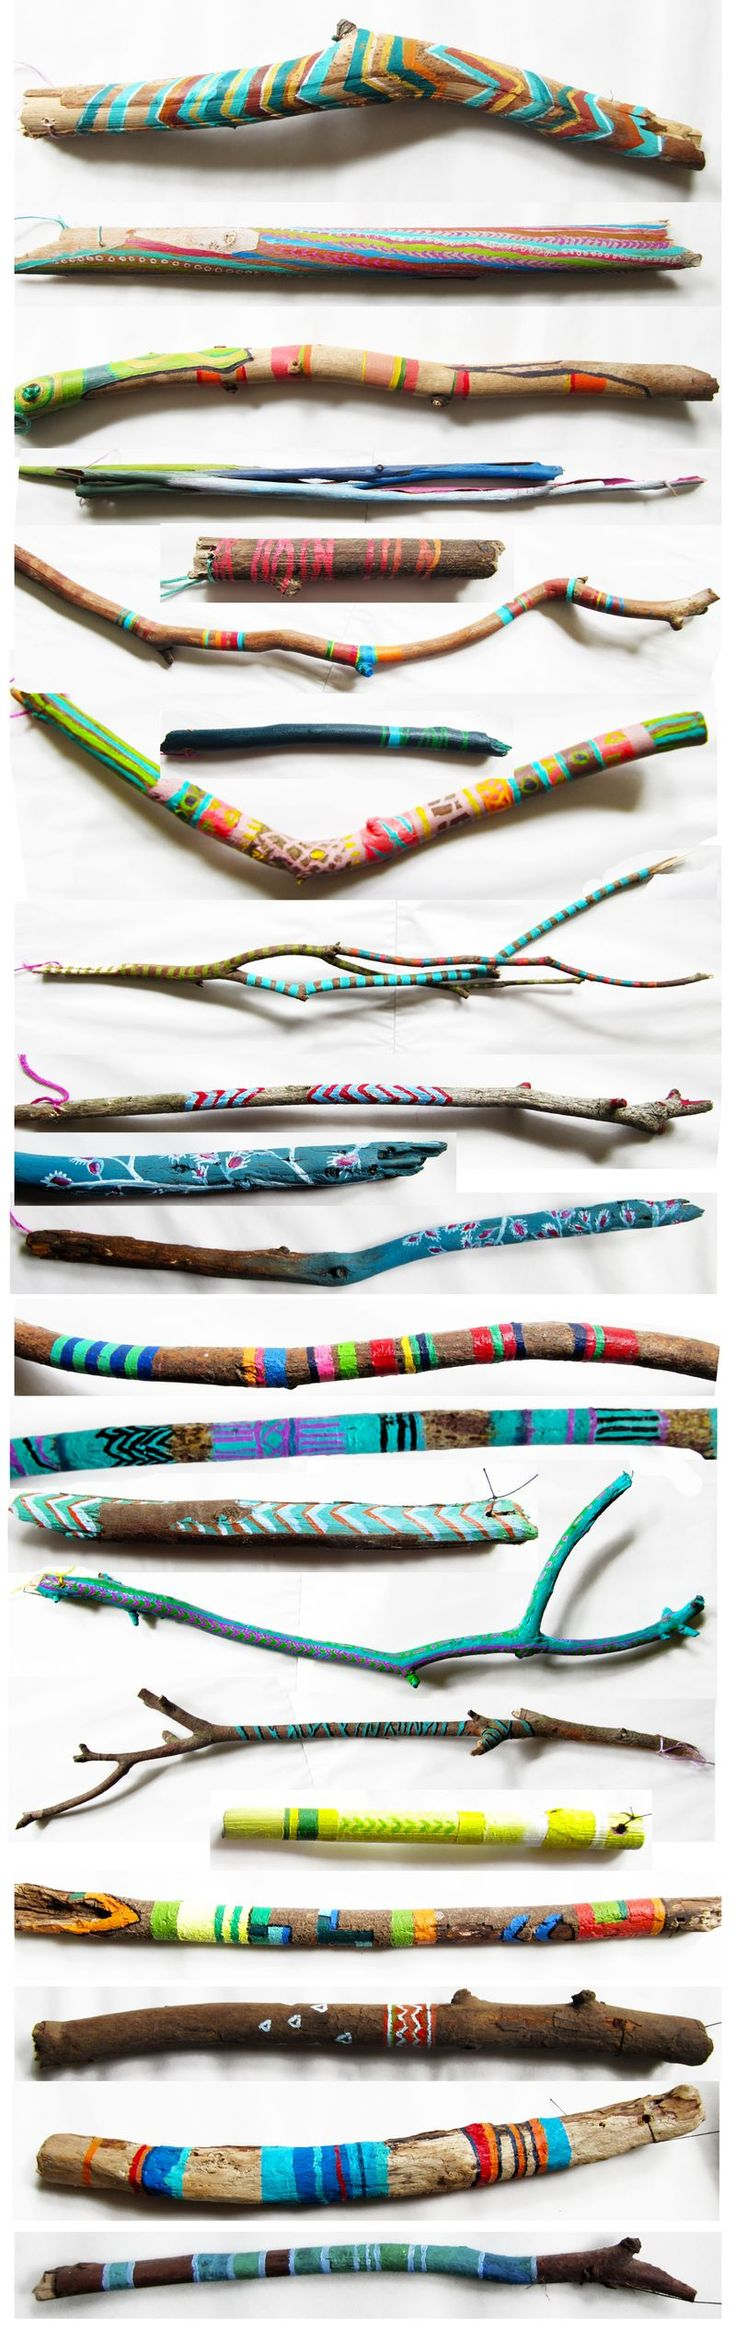 Painted Sticks Craft - DIY Inspiration - Nature Crafts for Kids | Small for Big